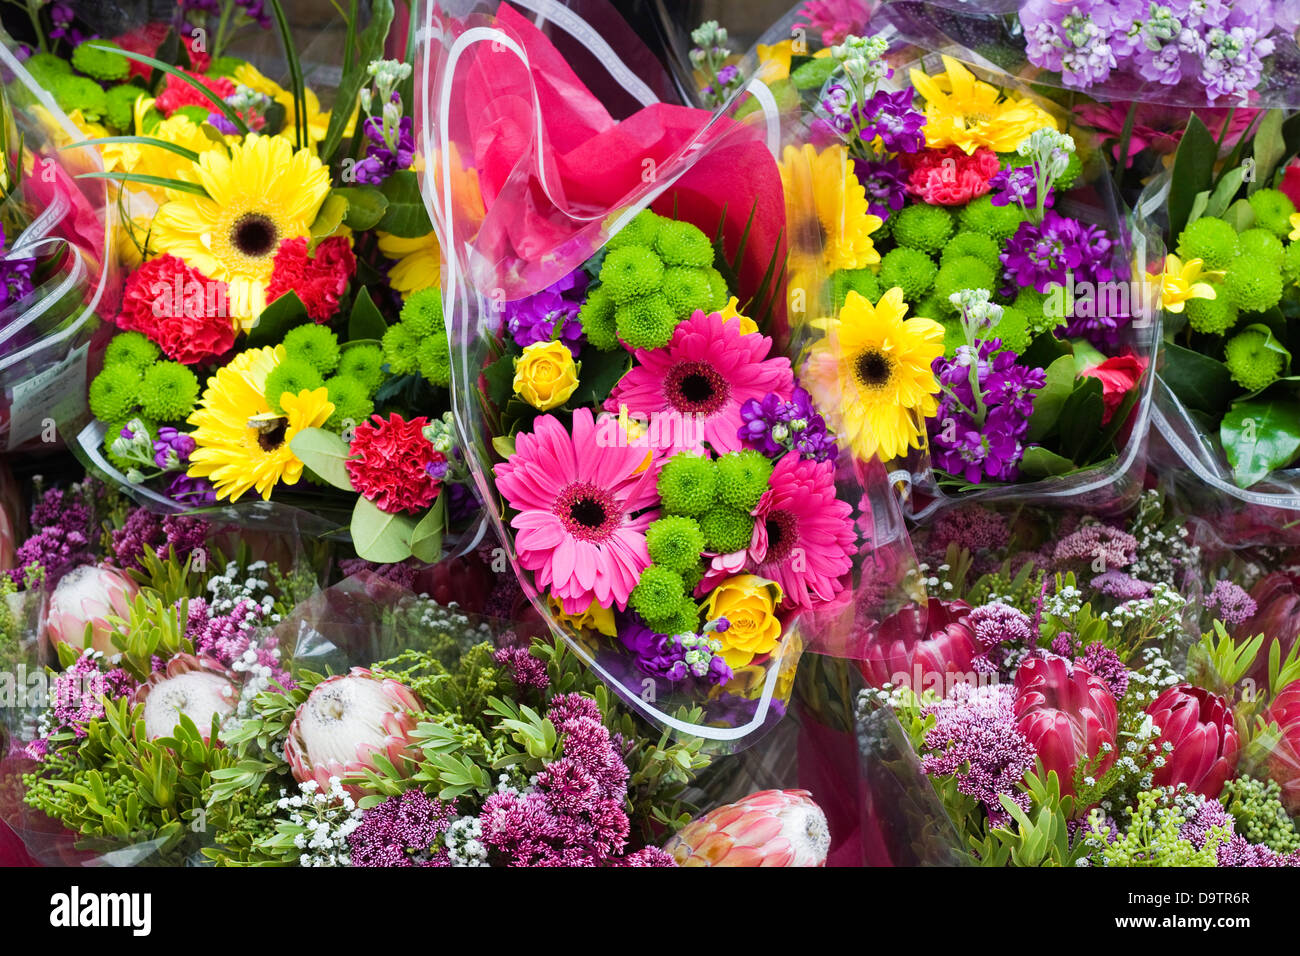 Bright colorful flower bouquets on sale Stock Photo: 57708079 - Alamy